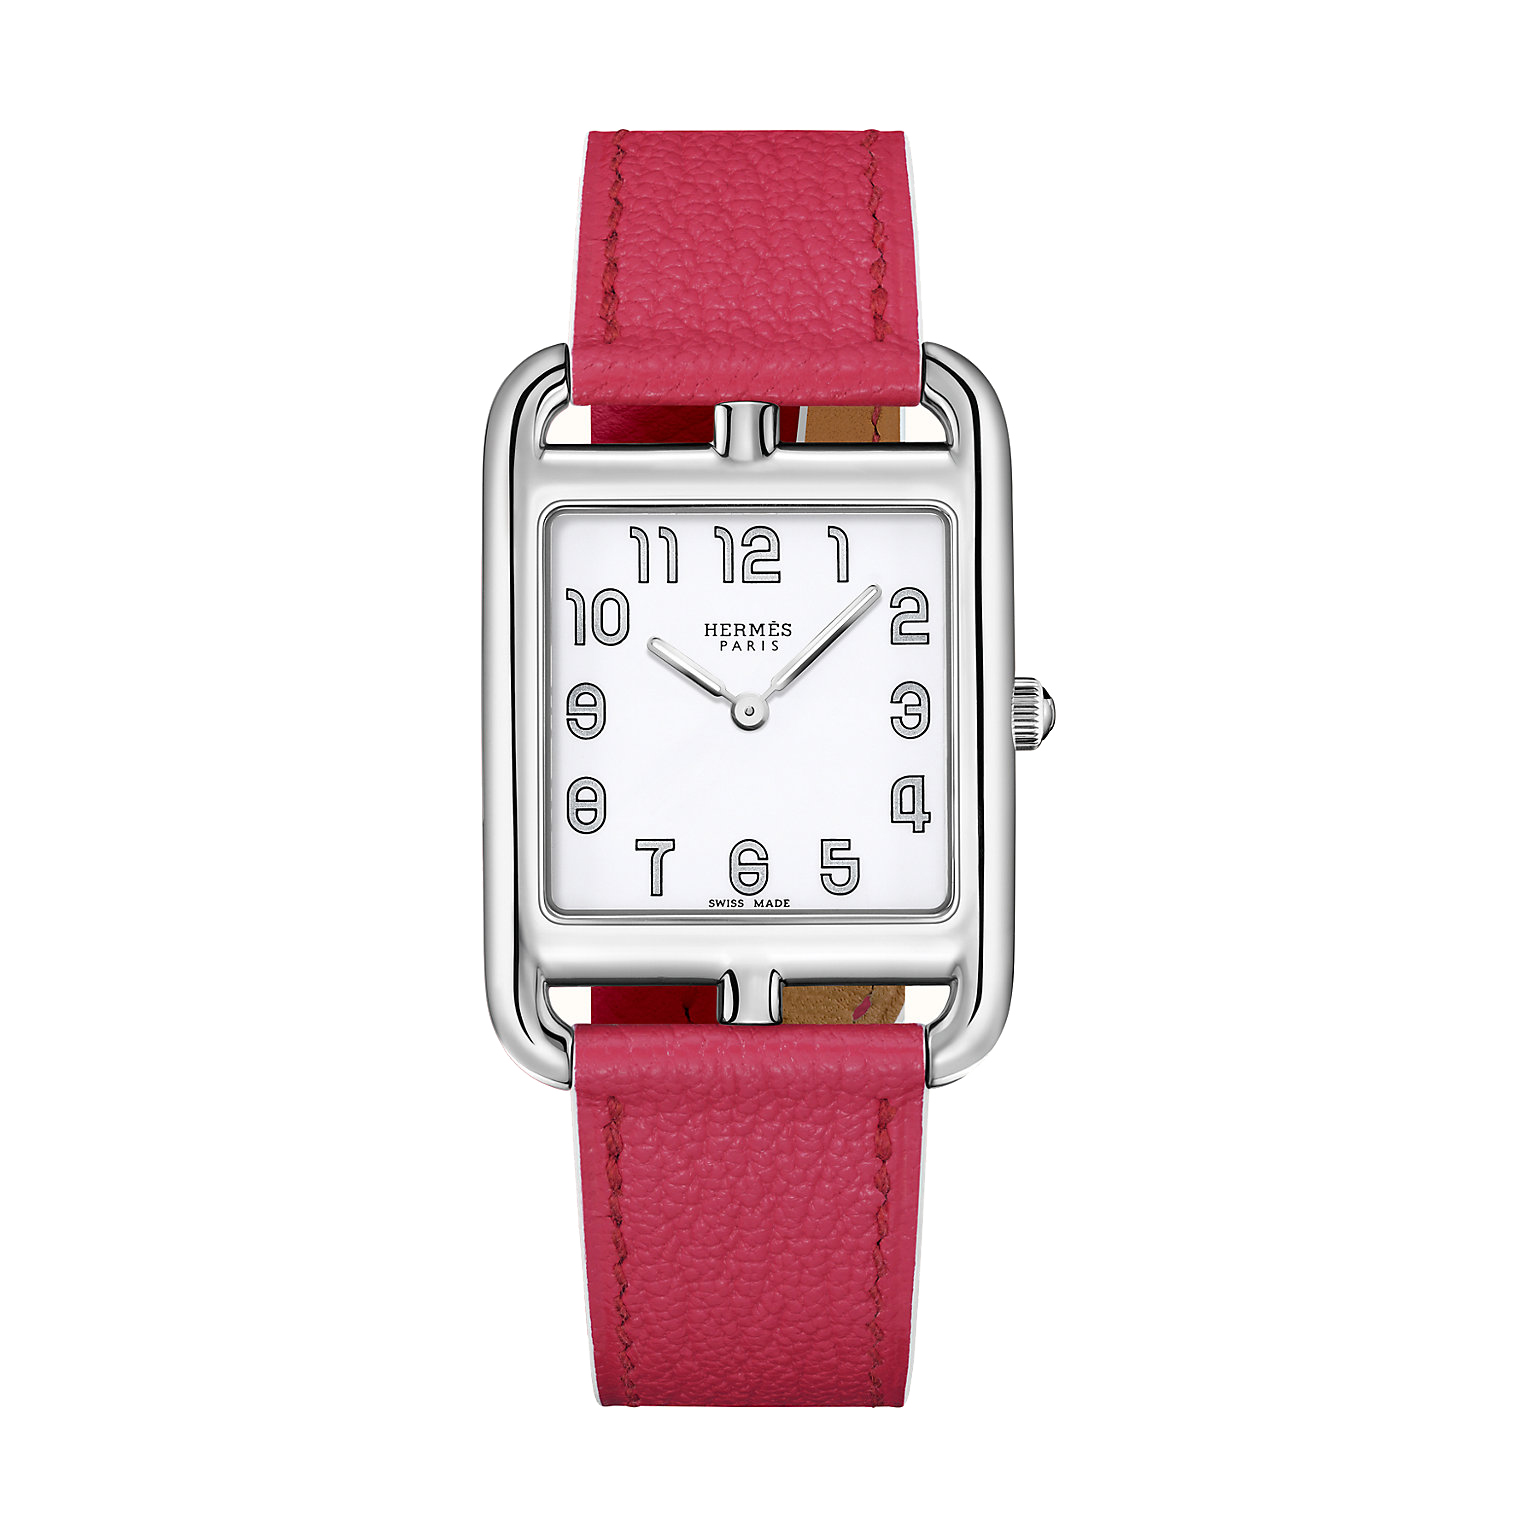 Hermès-cape-cod-29-x-29mm-Hall-of-Time-044236WW00